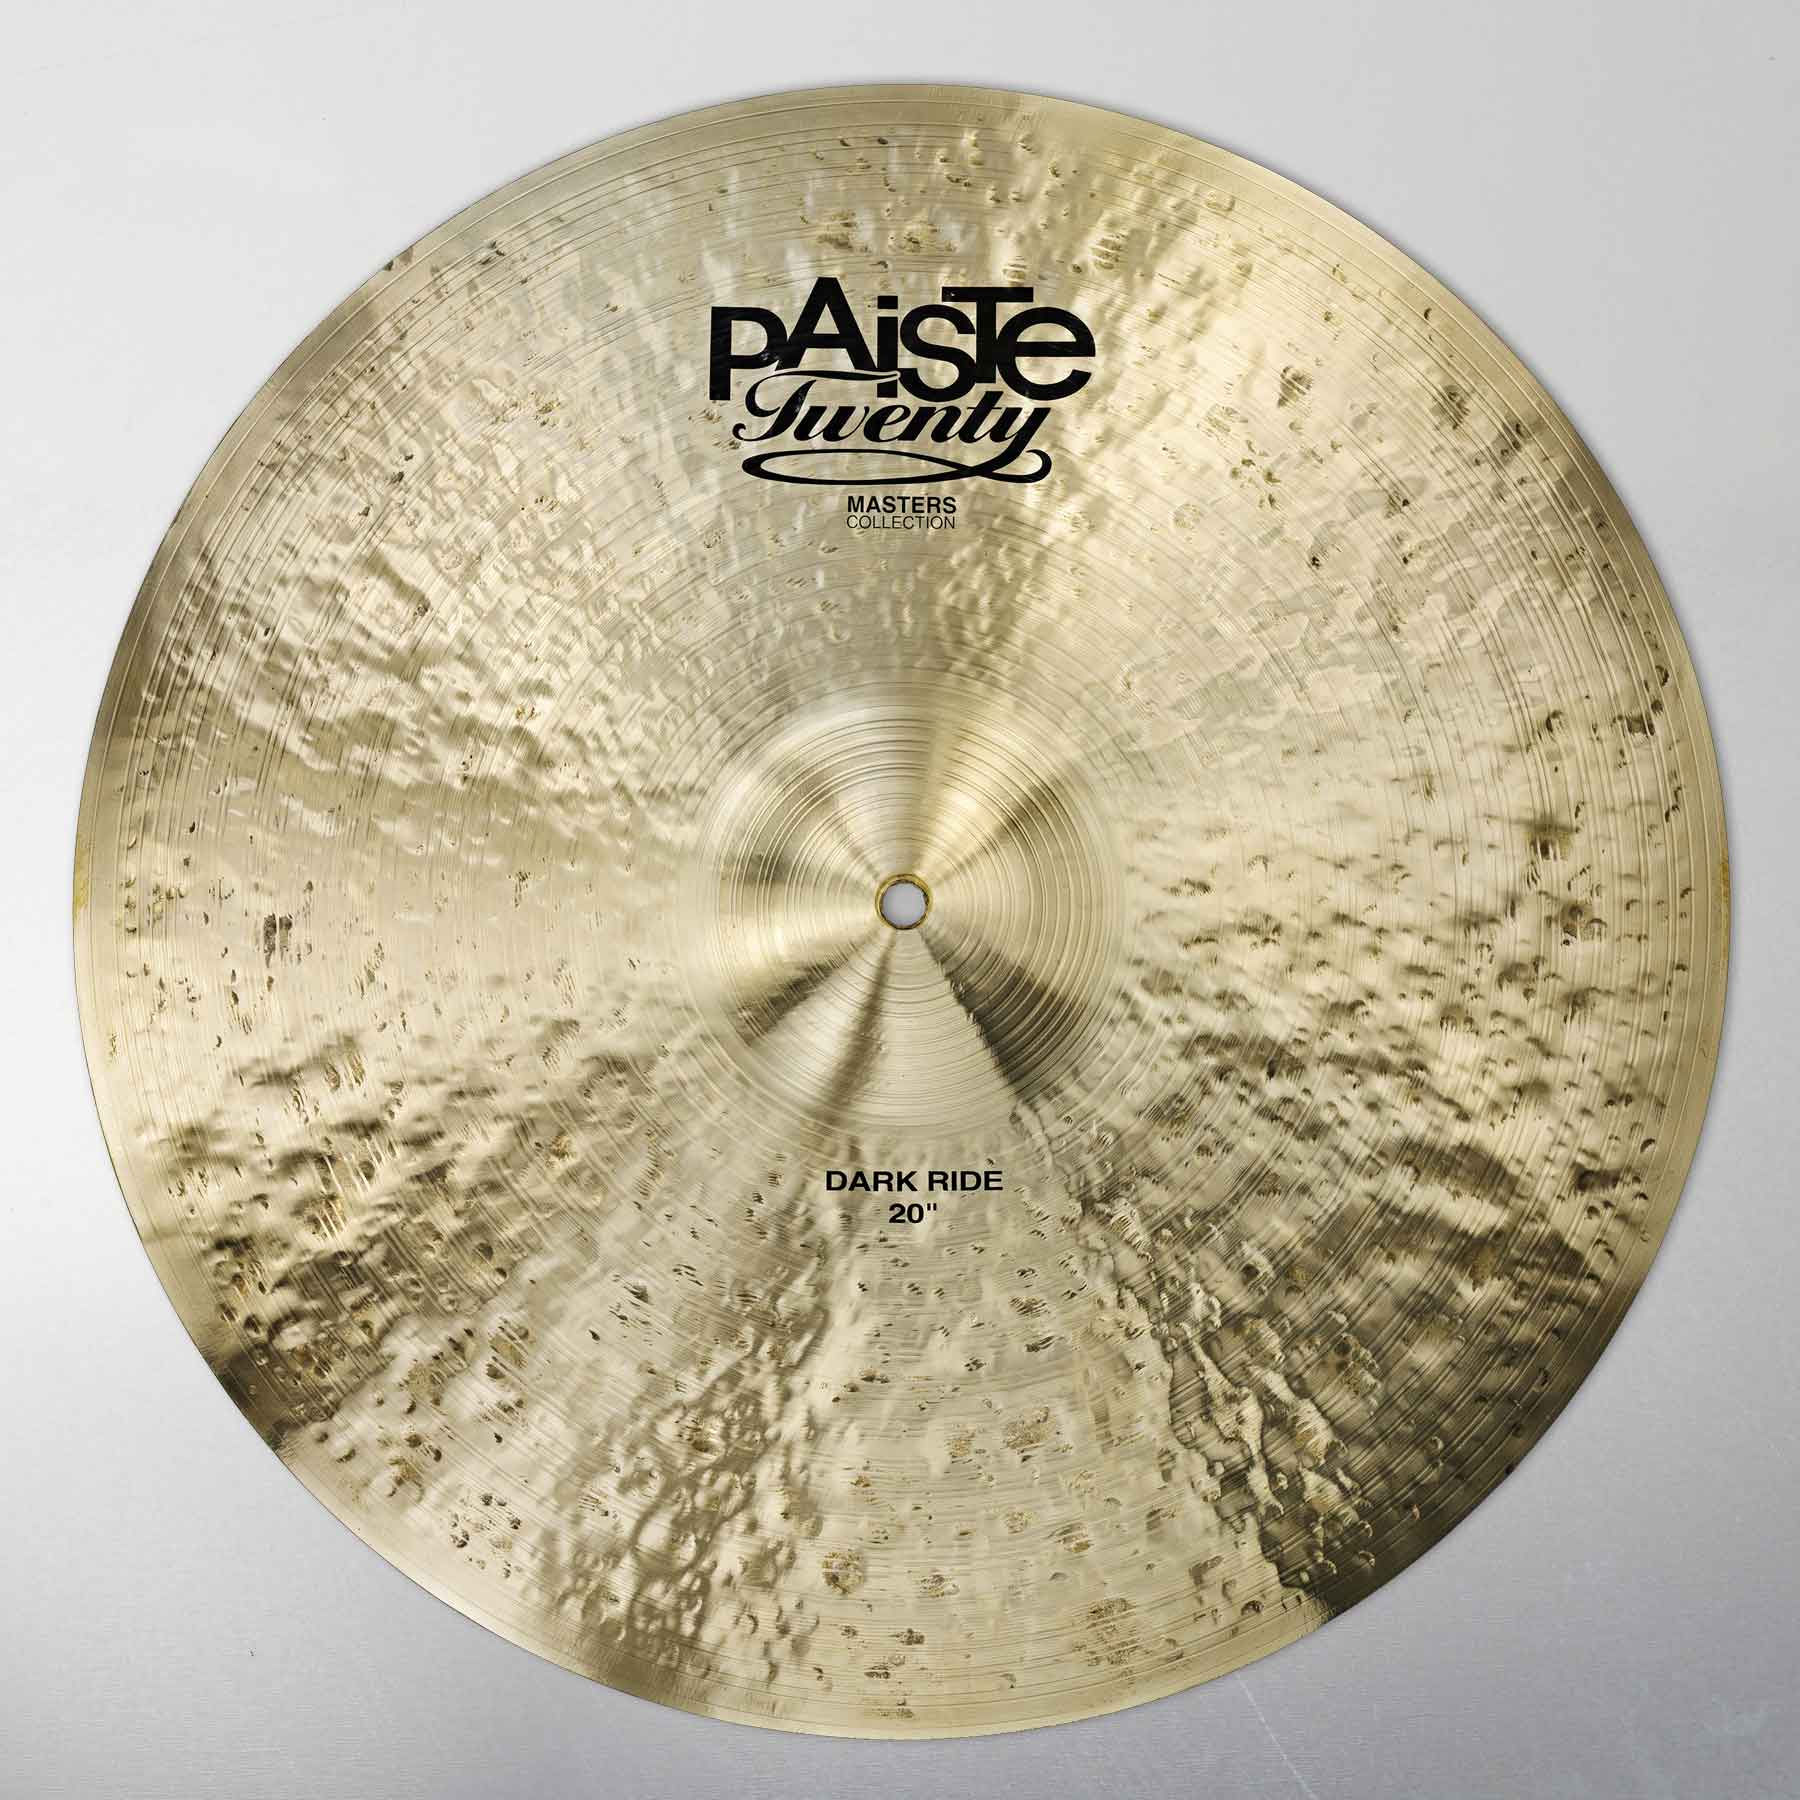 Paiste Logo Twenty Design Corporate Design